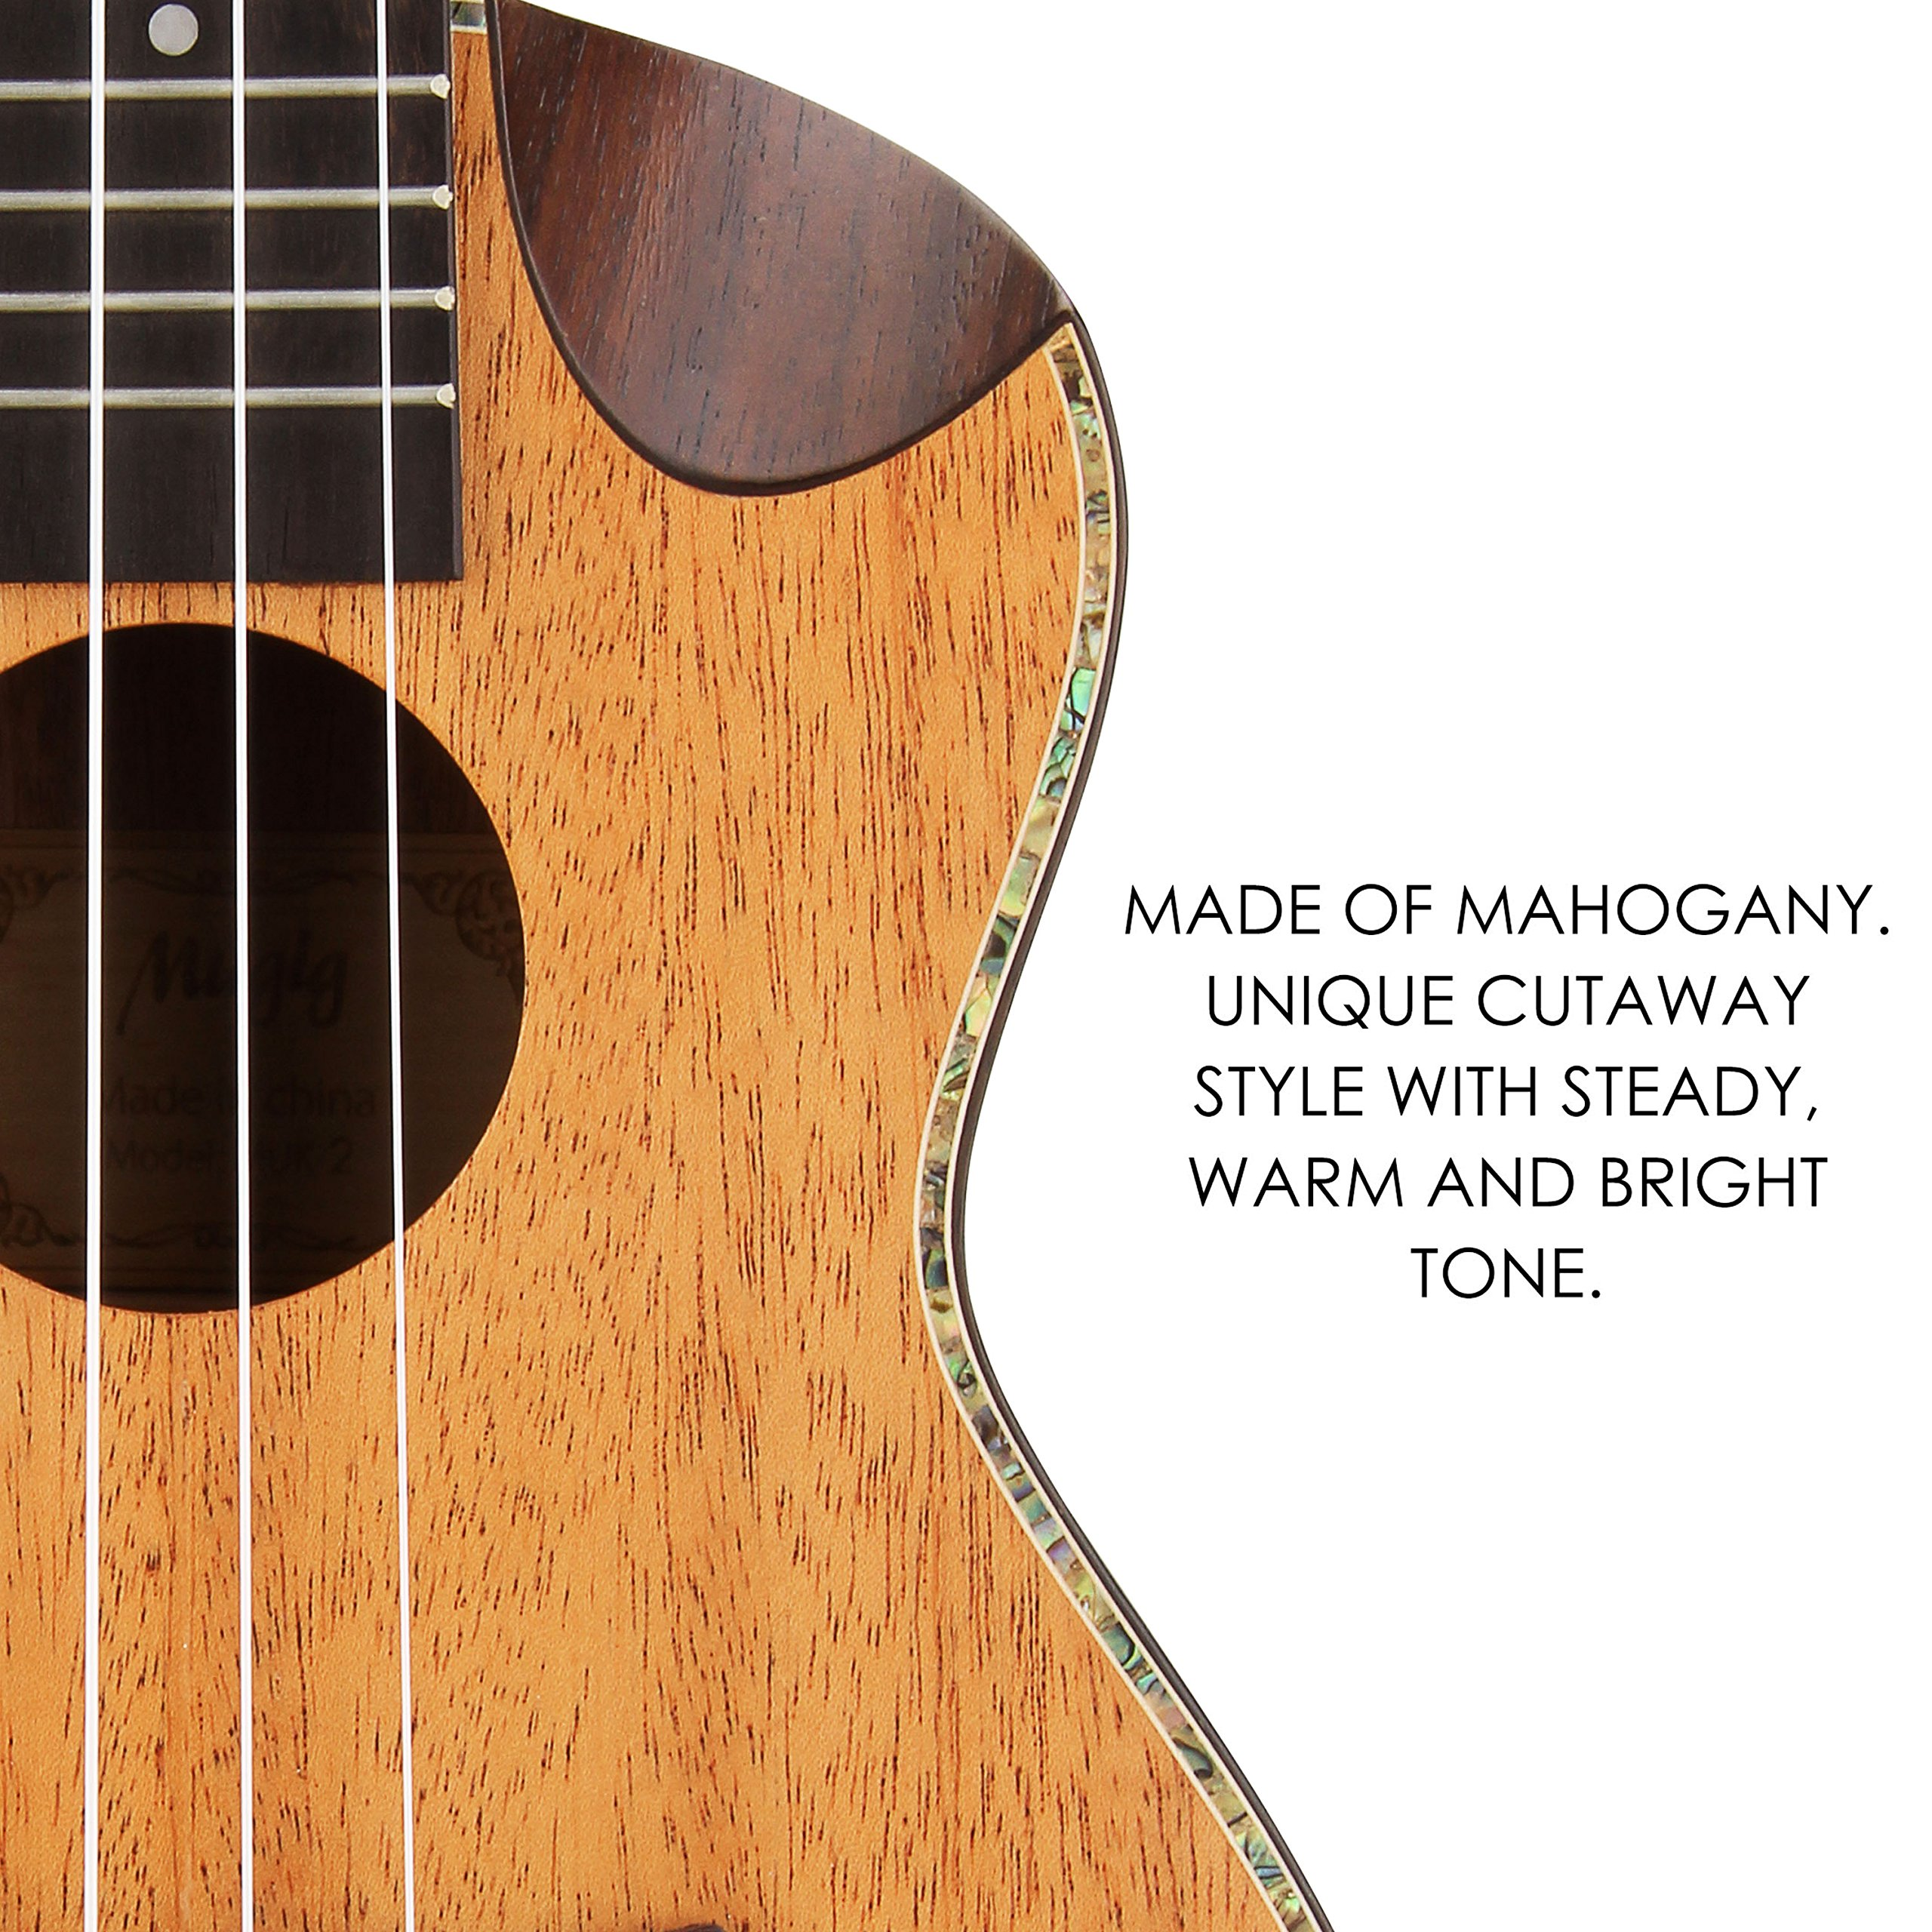 Mugig Soprano Ukulele Mahogany Body Rosewood Fingerboard Cutaway Design 4 Strings Instrument Italian Aquila Nylon Strings with carrying bag(21 inch)